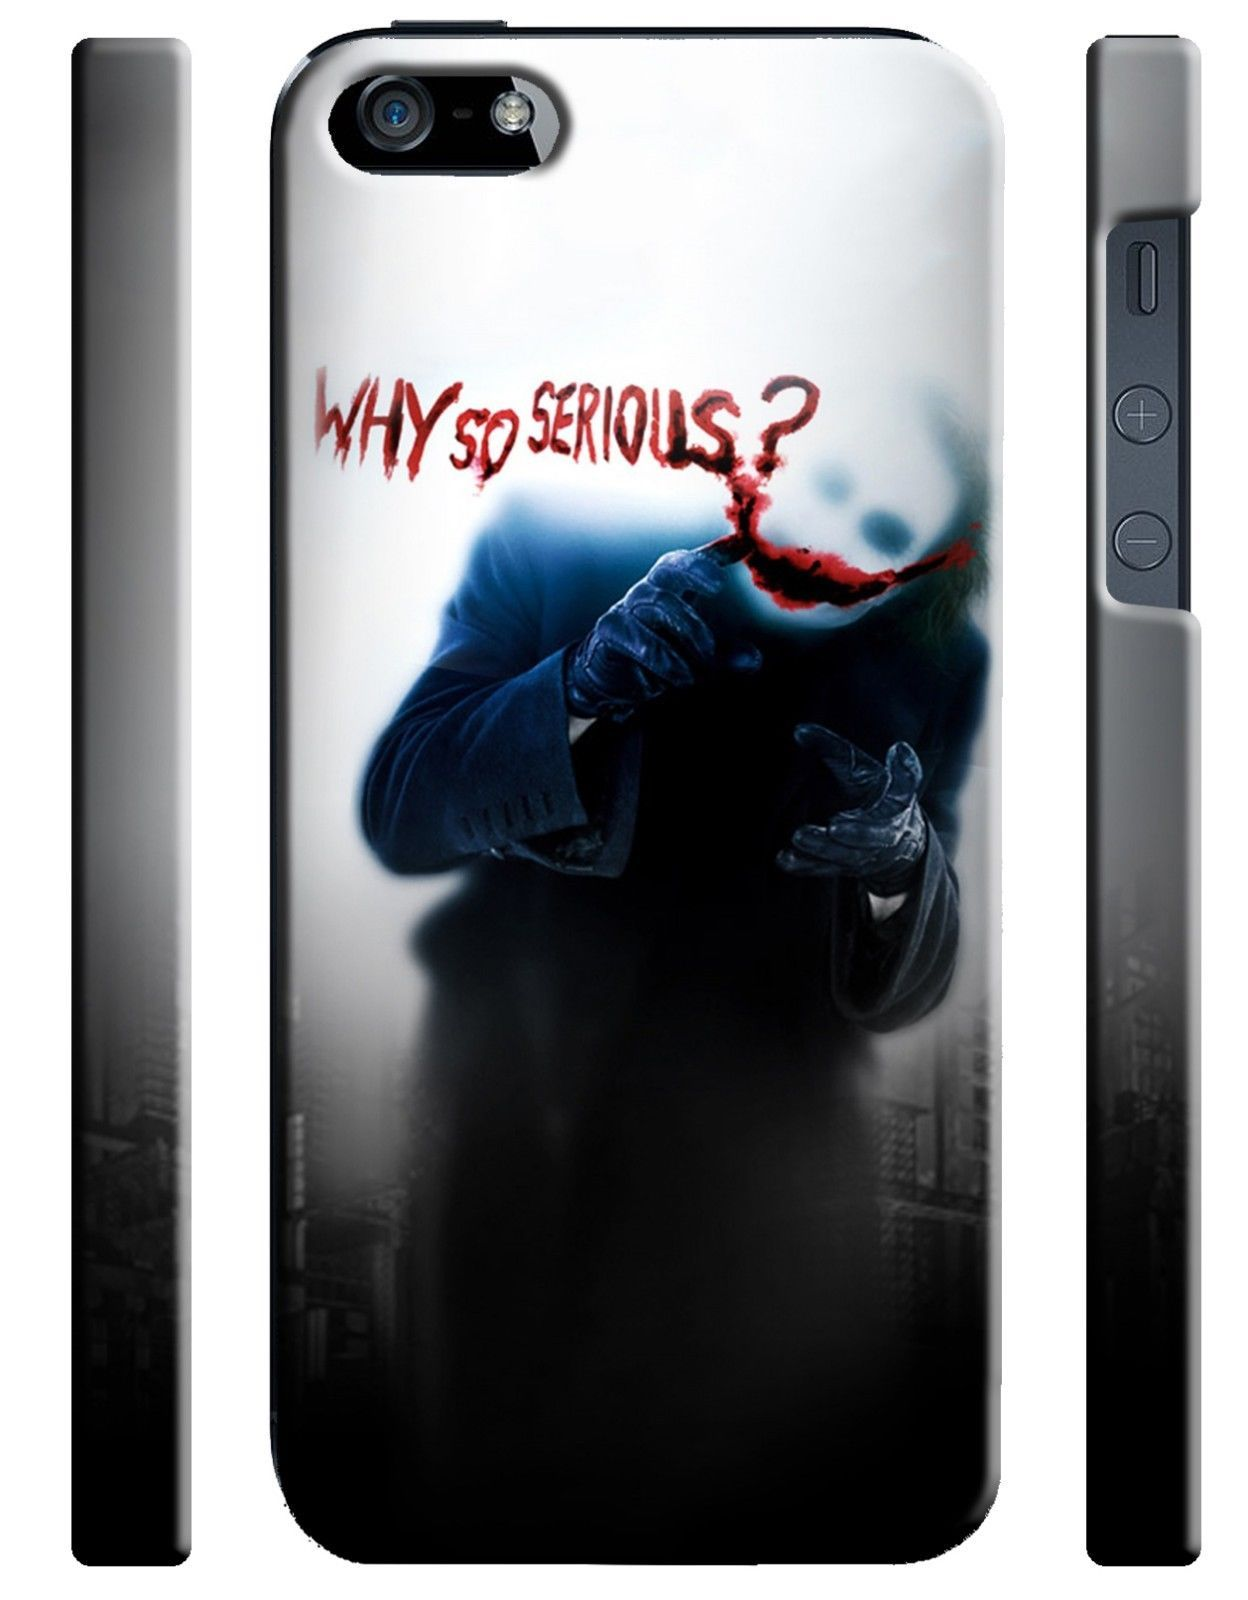 Iphone 4s 5 5s 5c 6 6s 7 Plus Case The Joker Why So Serious Dark Knight Batman Ebay Joker Dark Knight Iphone Cases